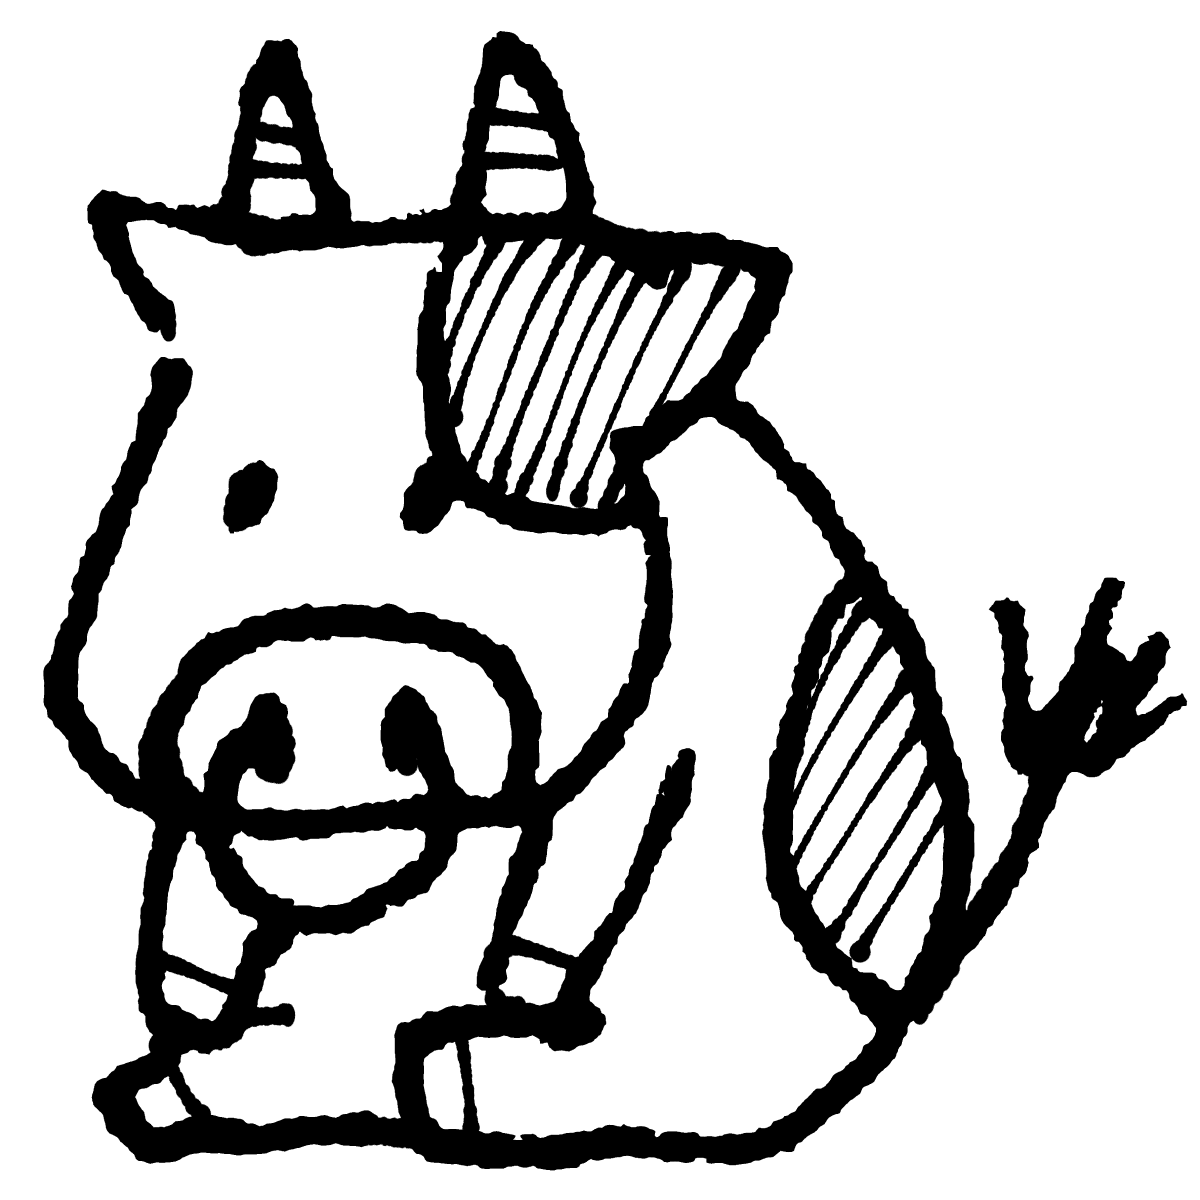 座る牛のイラスト / Sitting cow Illustration